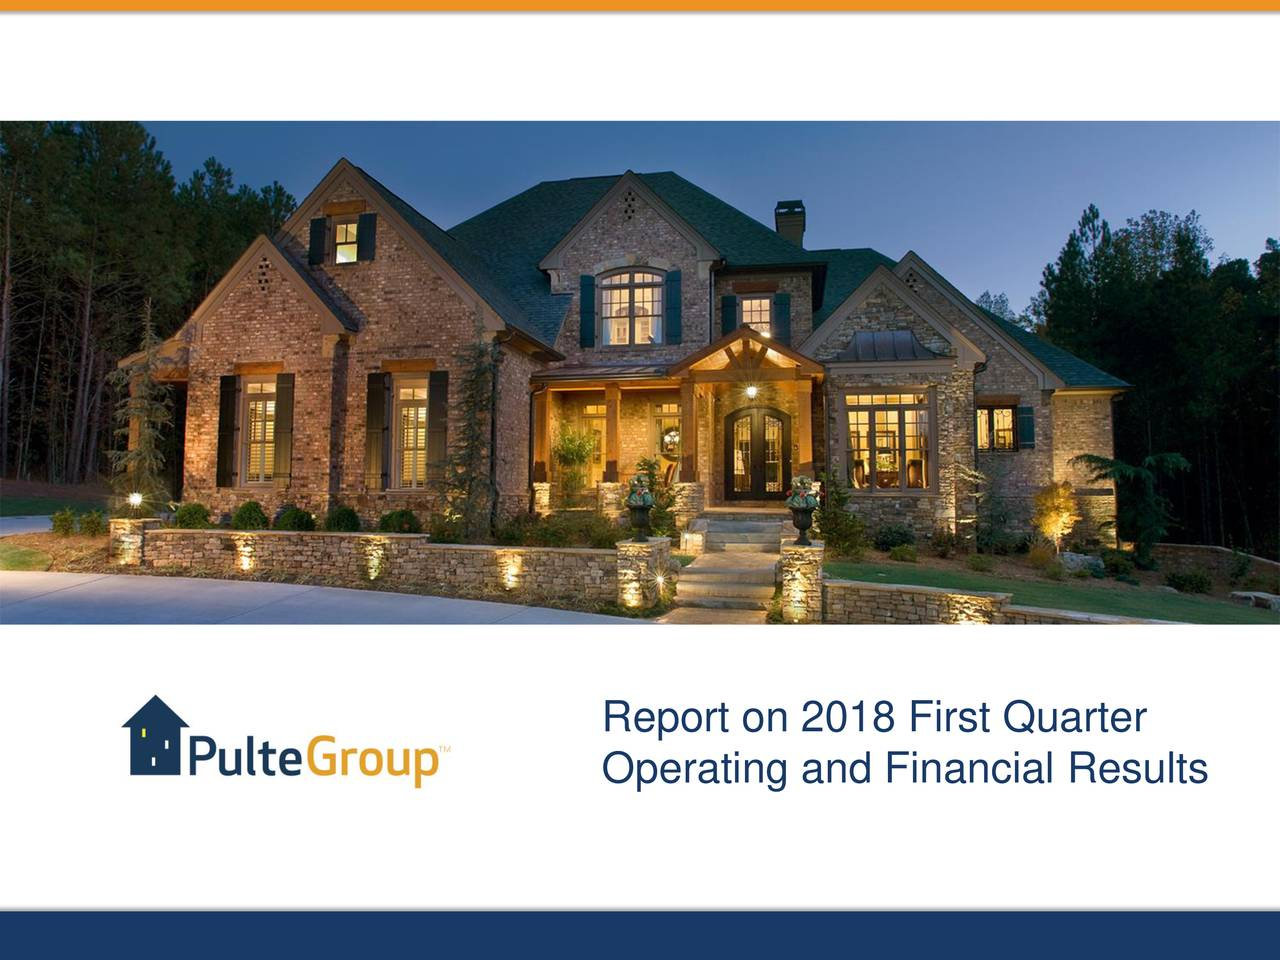 Report on 2018 First Quarter